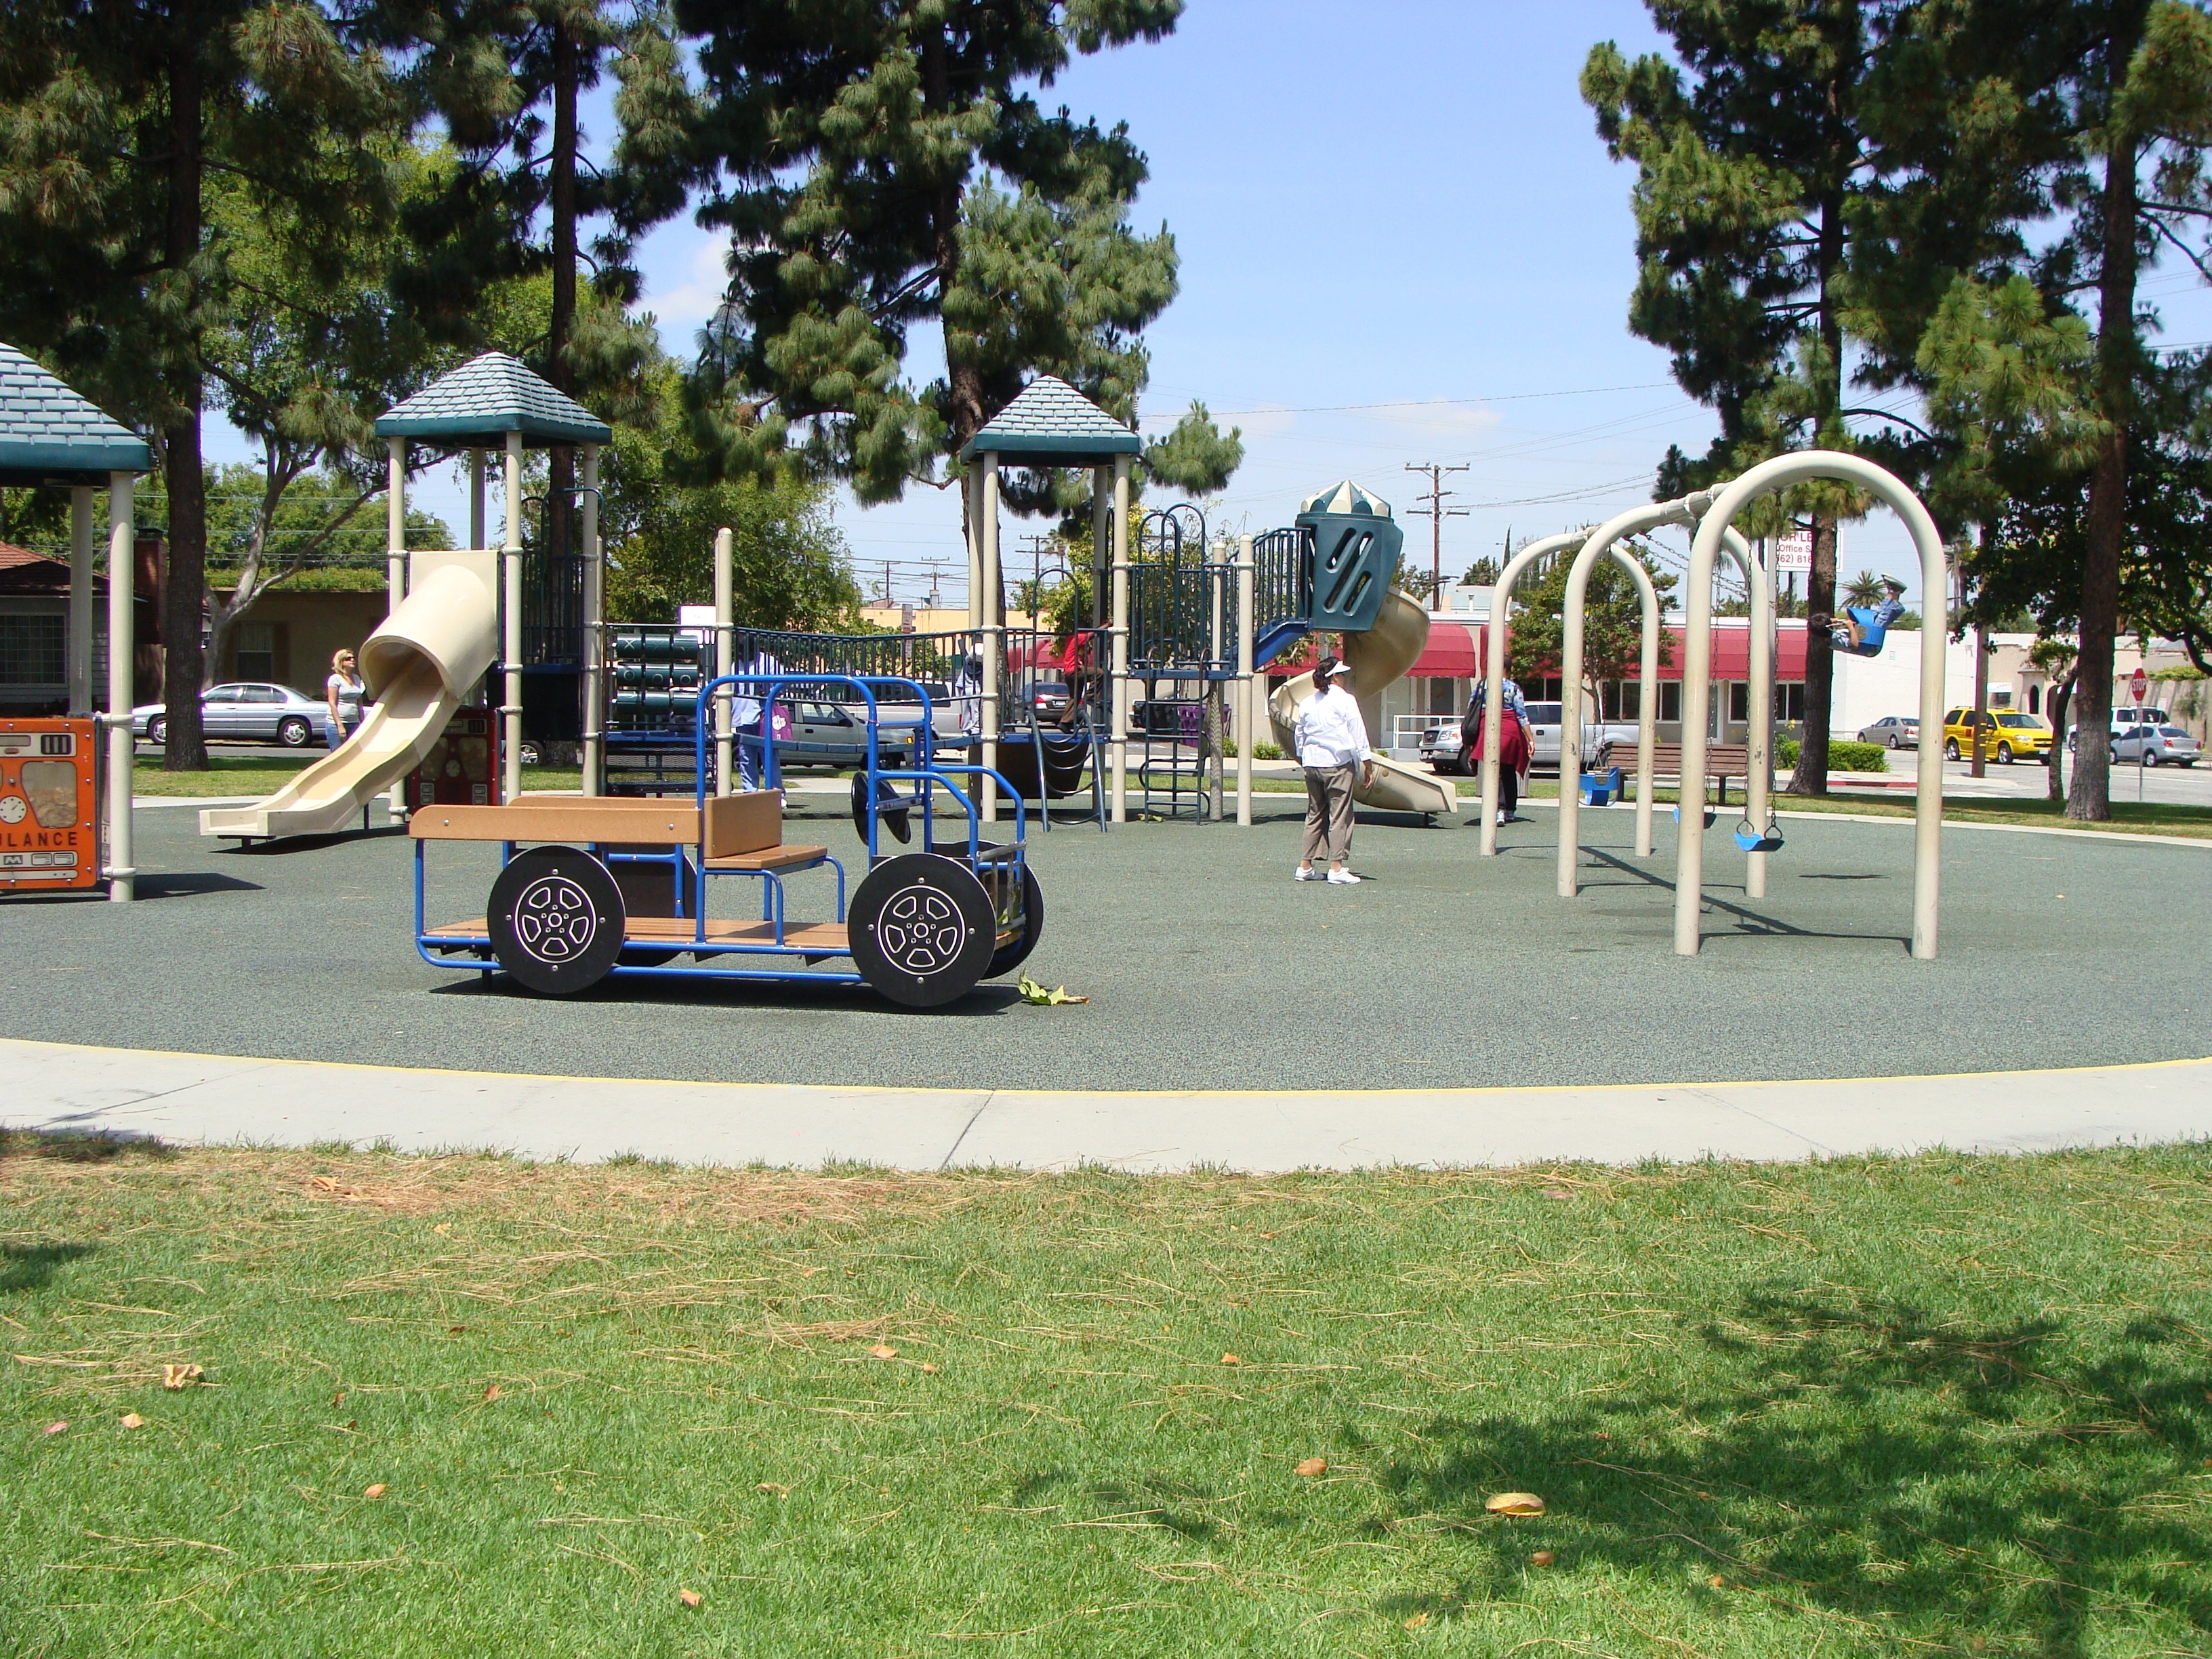 Children playing on the playground at Reservoir Park